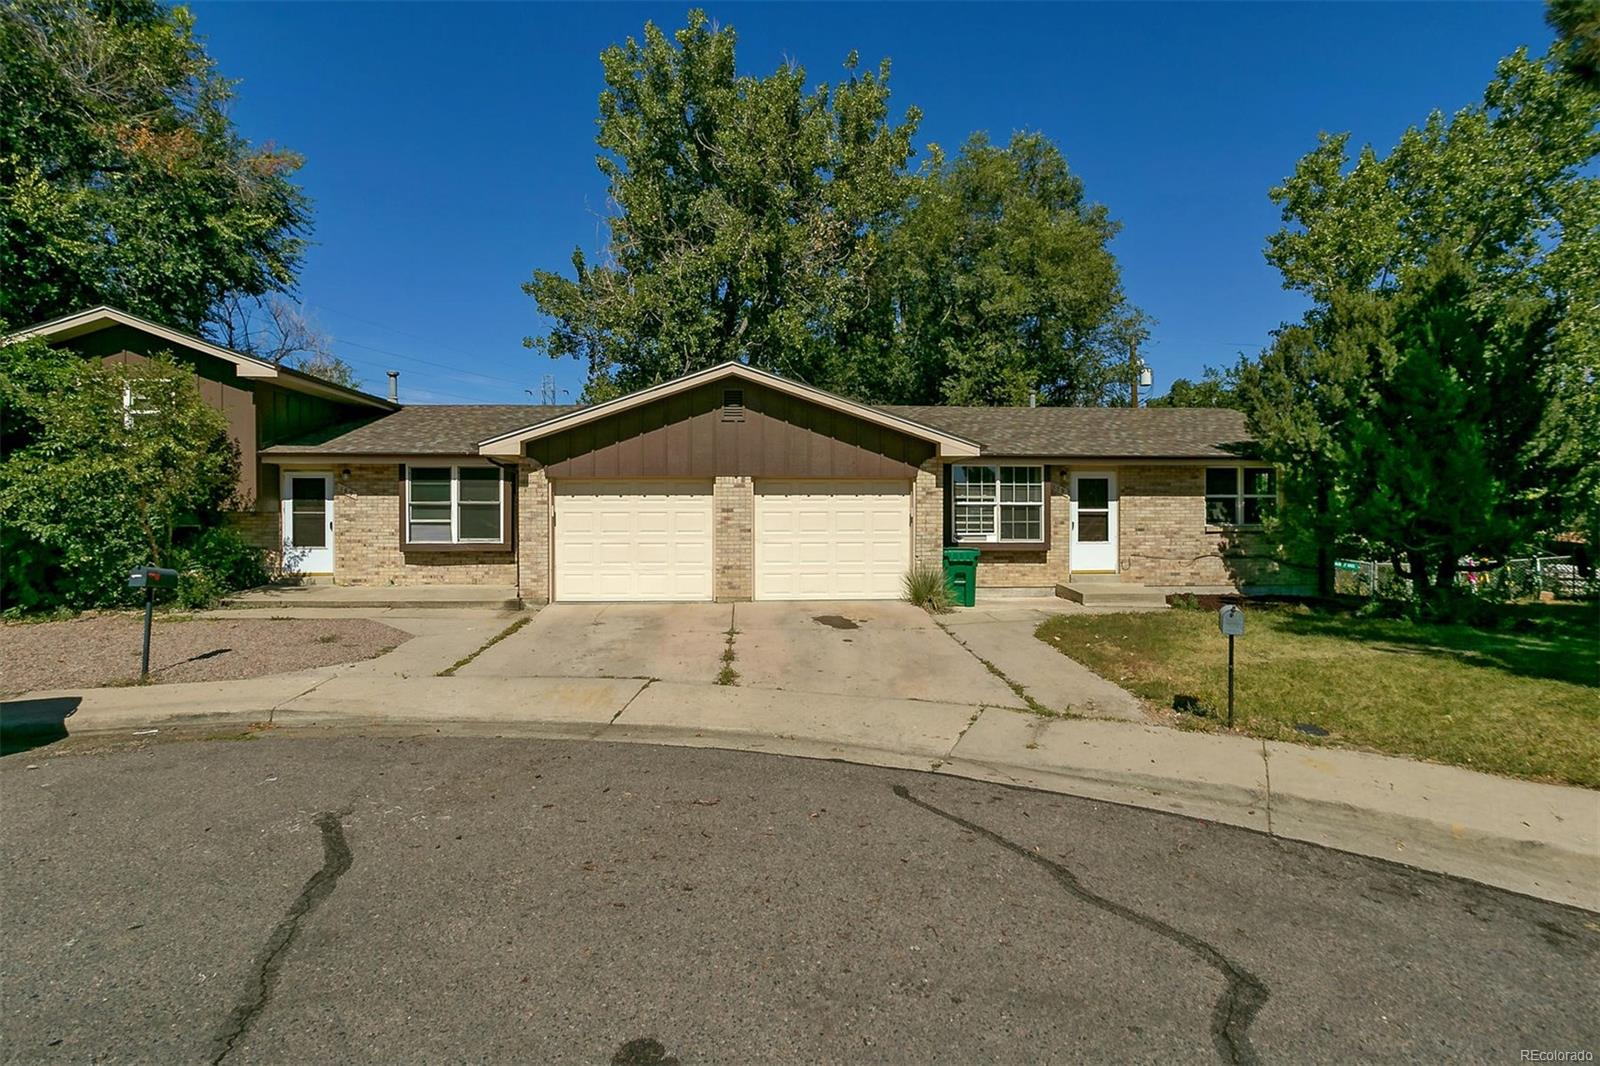 169 Eaton Court, Lakewood, CO 80226 - Lakewood, CO real estate listing